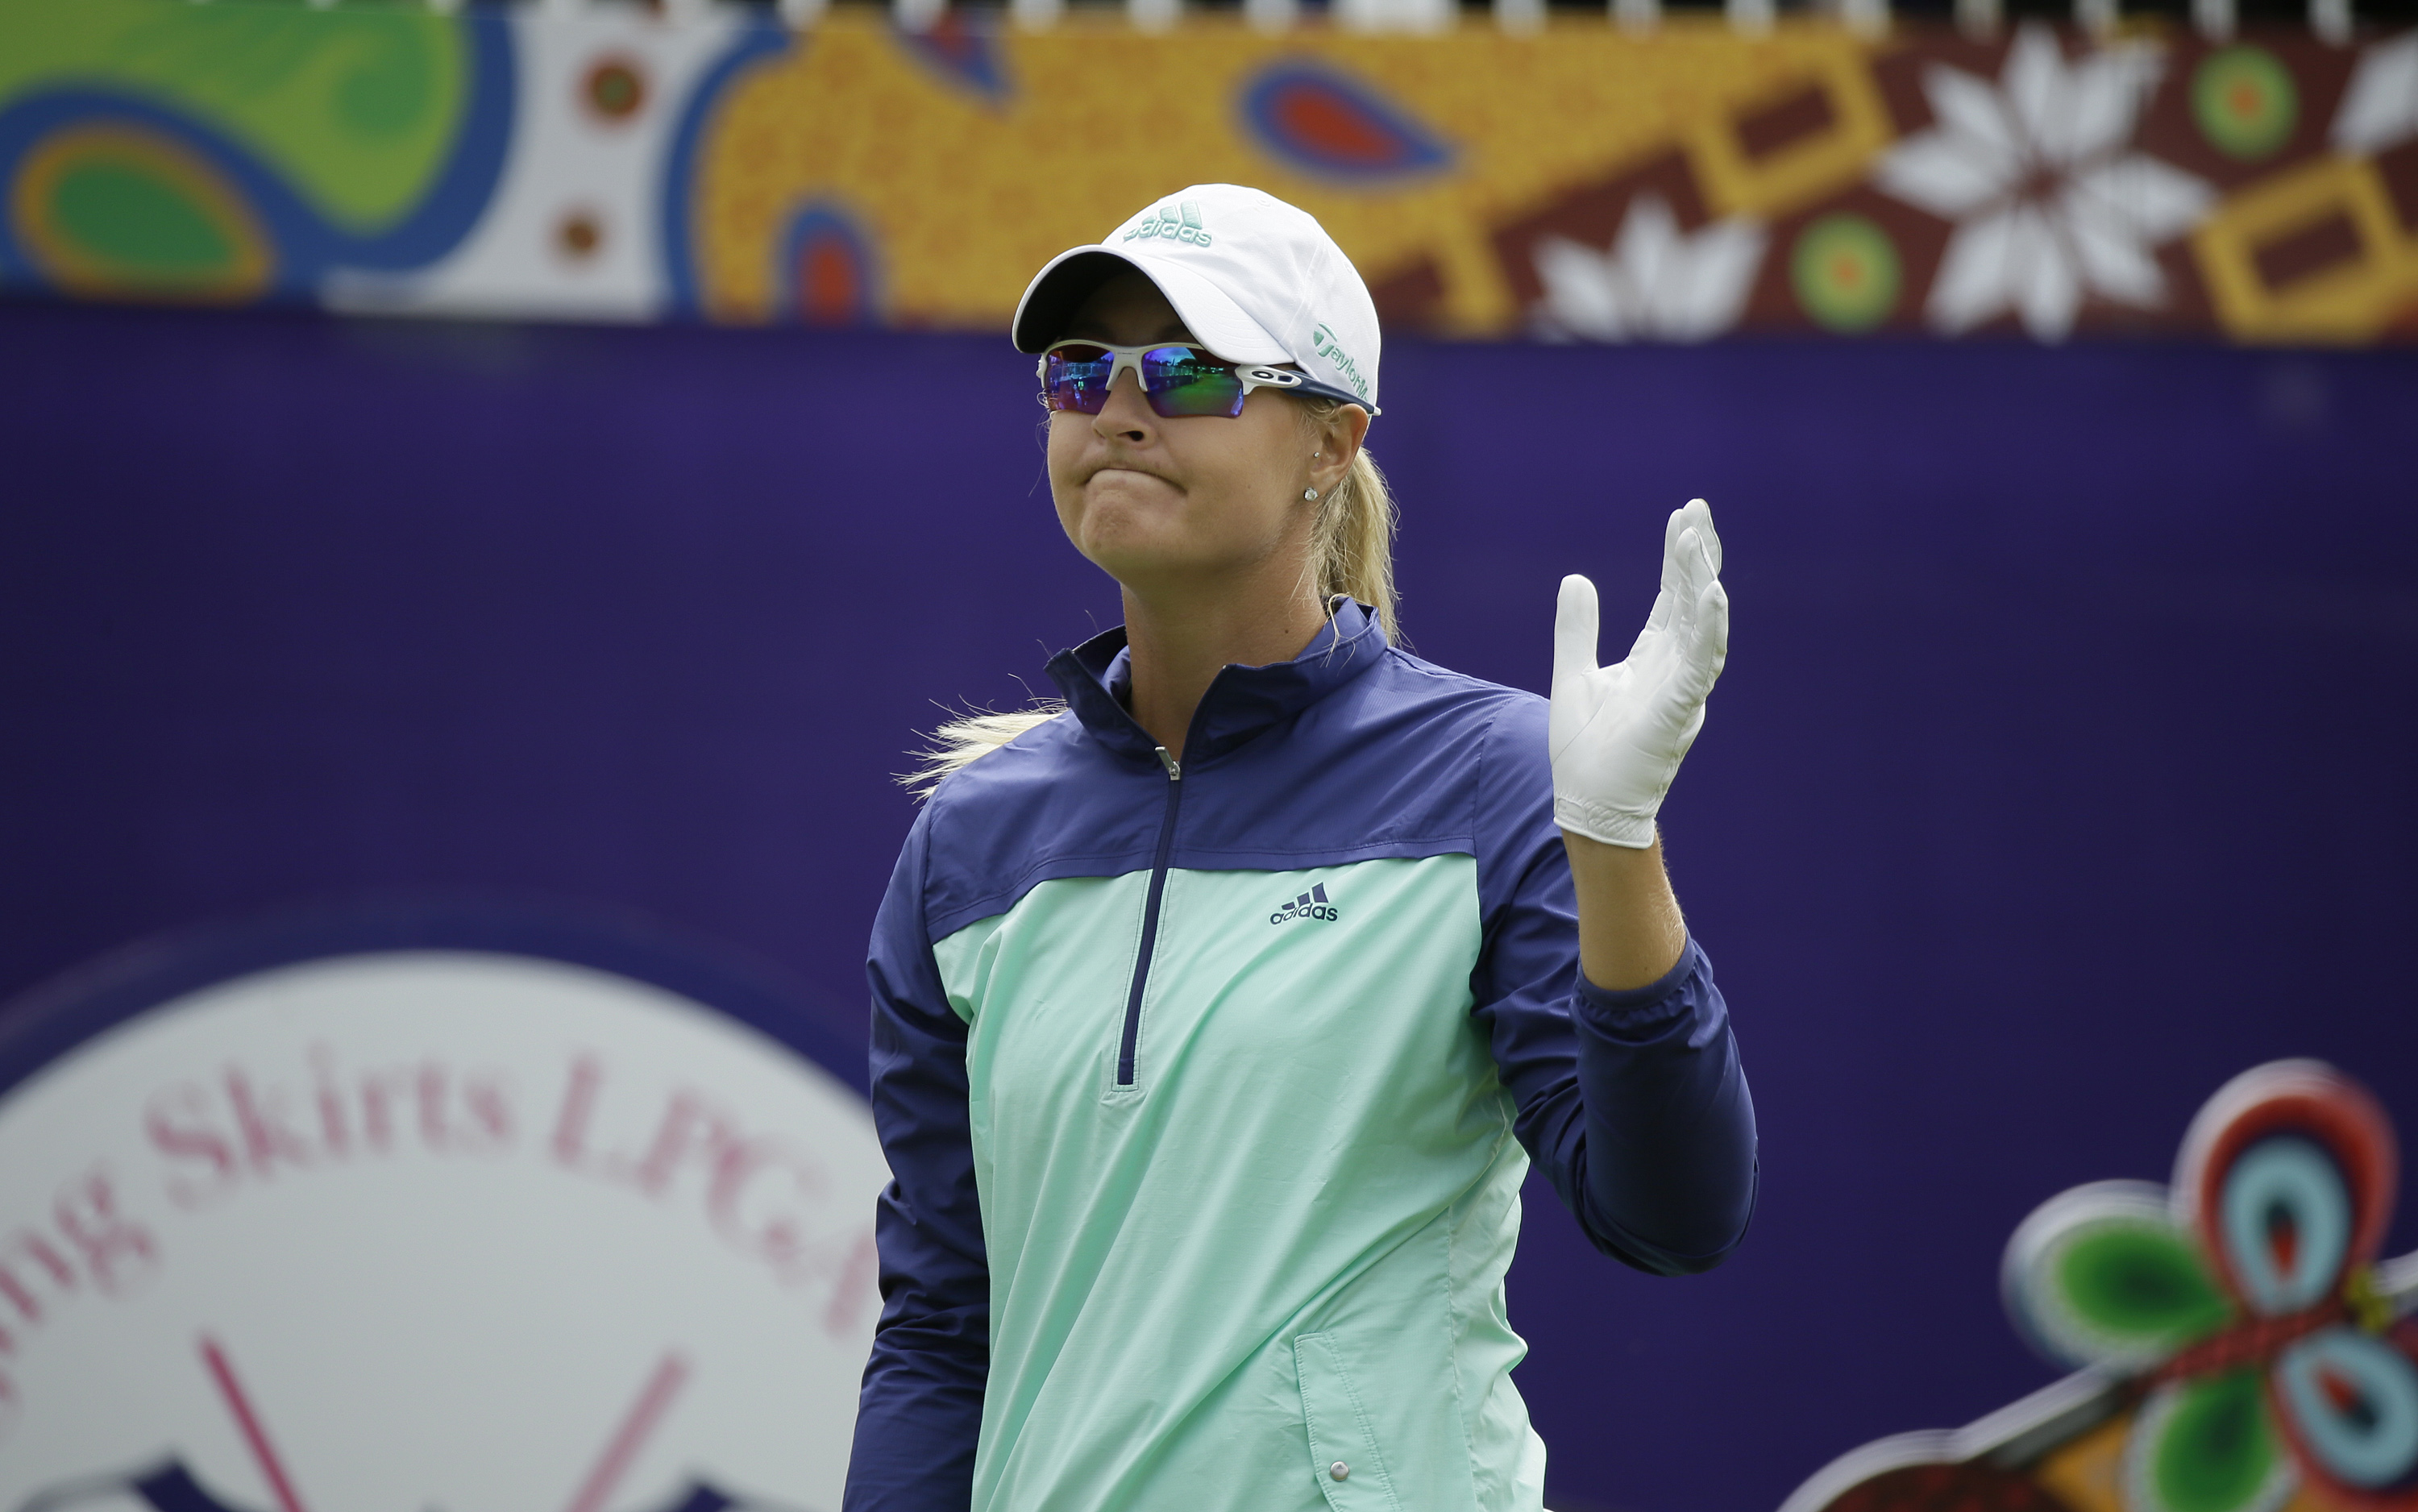 Anna Nordqvist, of Sweden, waves before hitting from the first tee of the Lake Merced Golf Club during the first round of the Swinging Skirts LPGA Classic golf tournament Thursday, April 21, 2016, in Daly City, Calif. (AP Photo/Eric